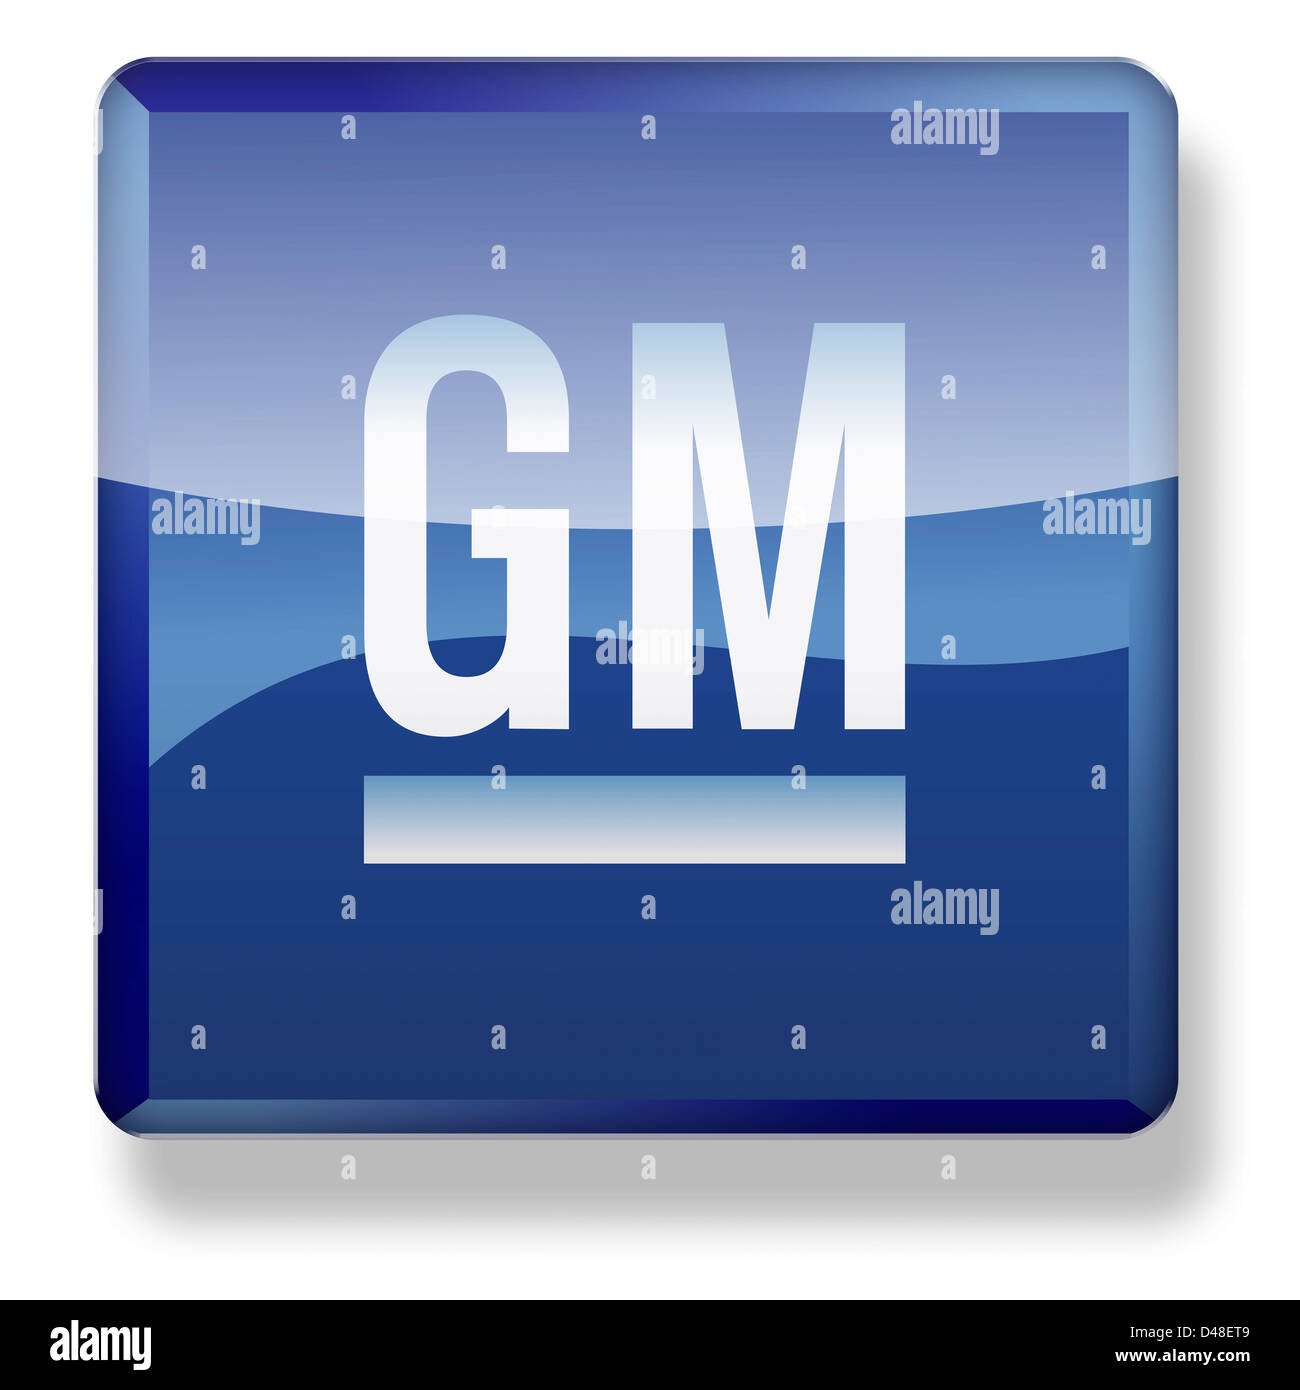 General Motors logo as an app icon. Clipping path included. - Stock Image